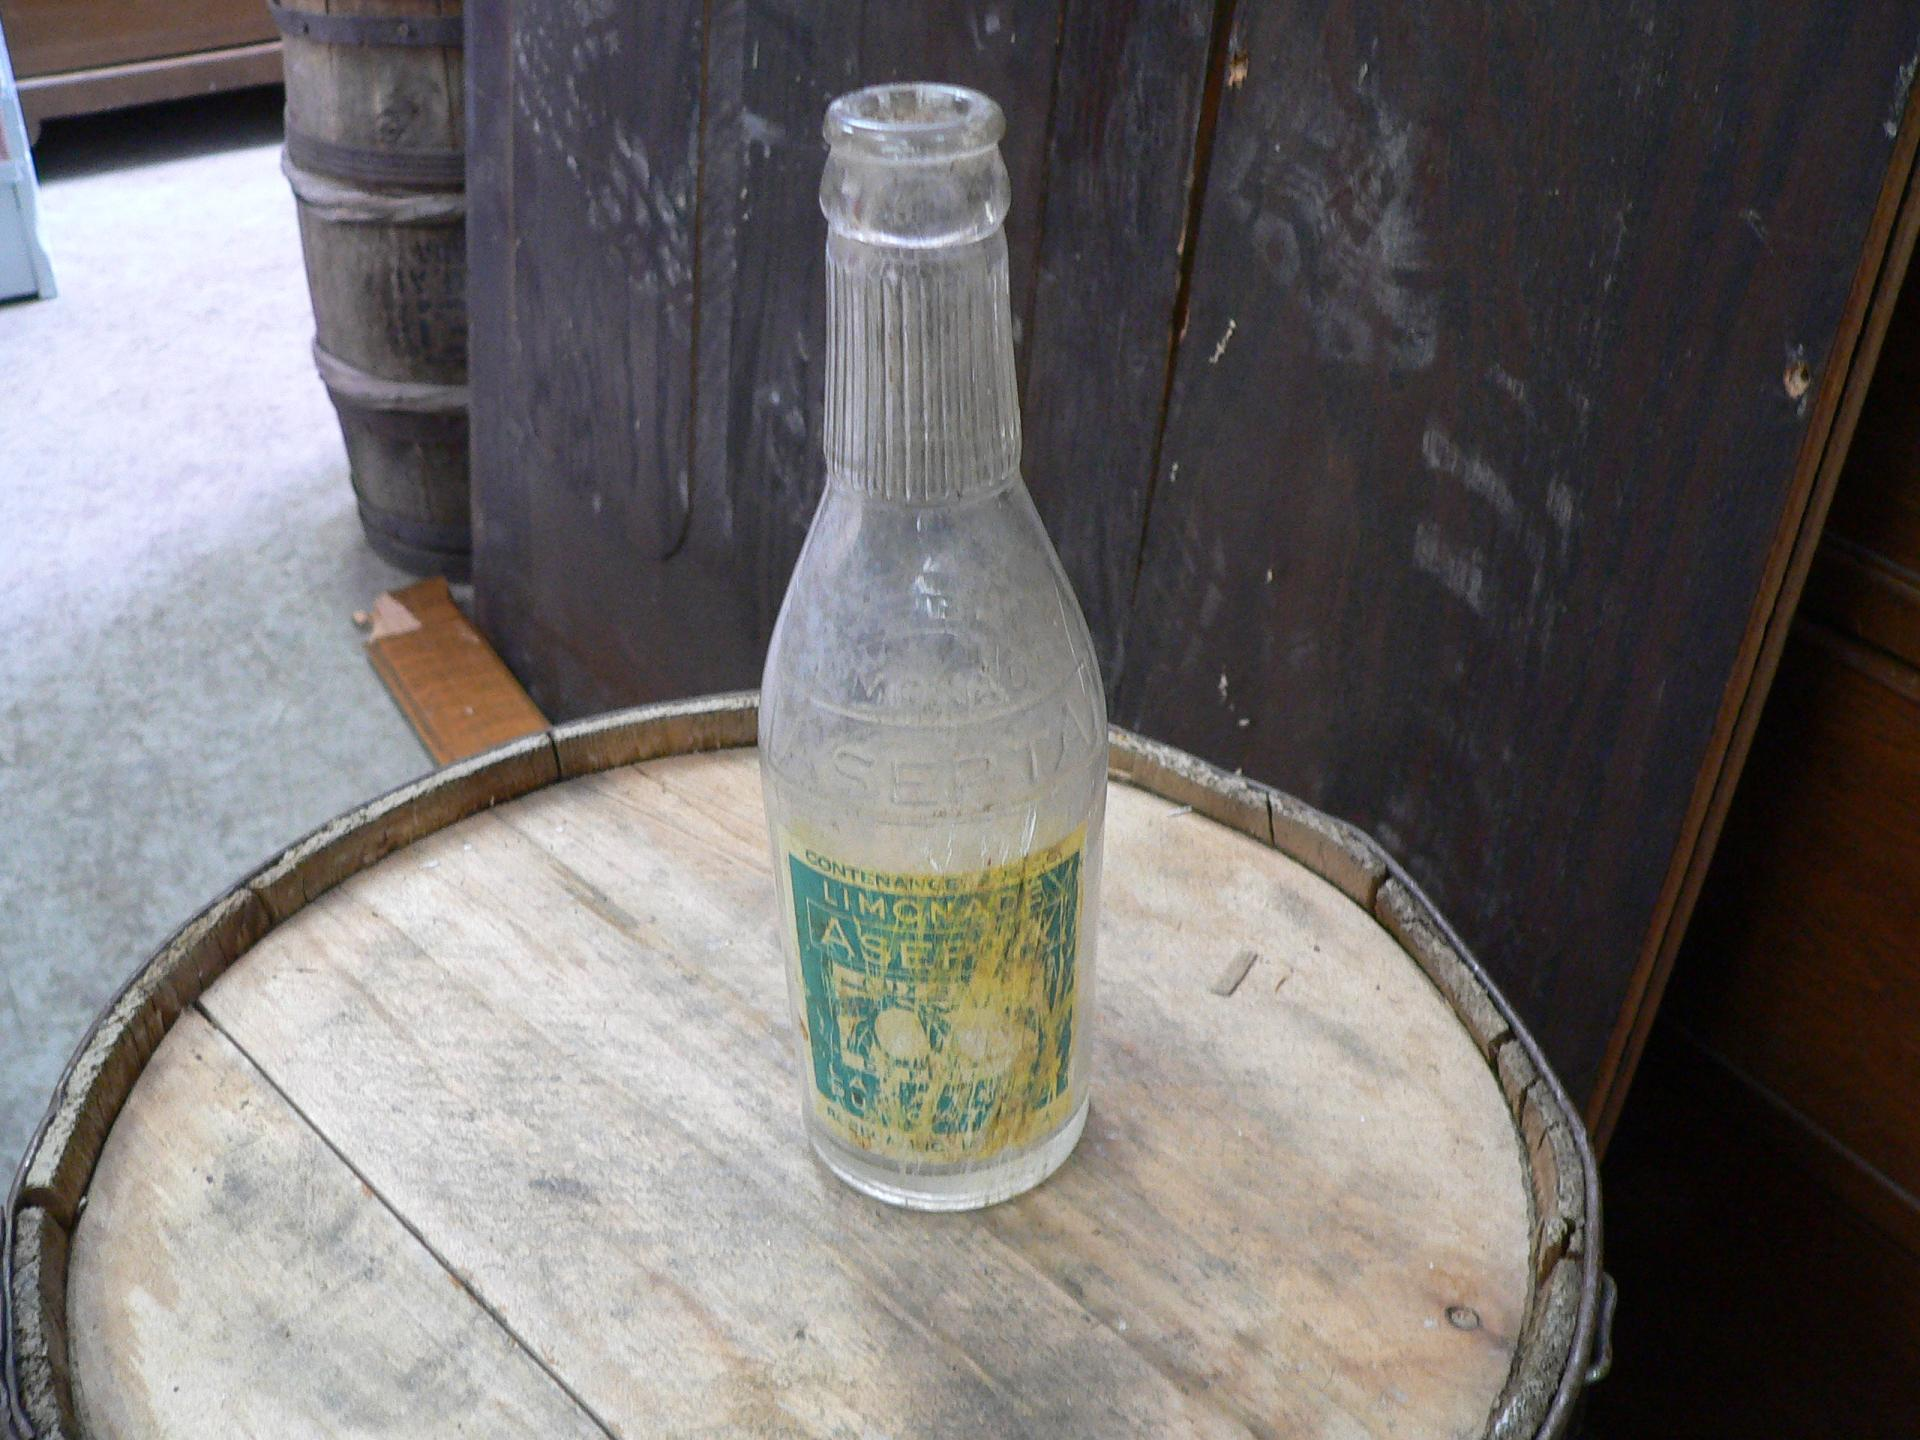 Bouteille antique limonade a septa # 5023. 44